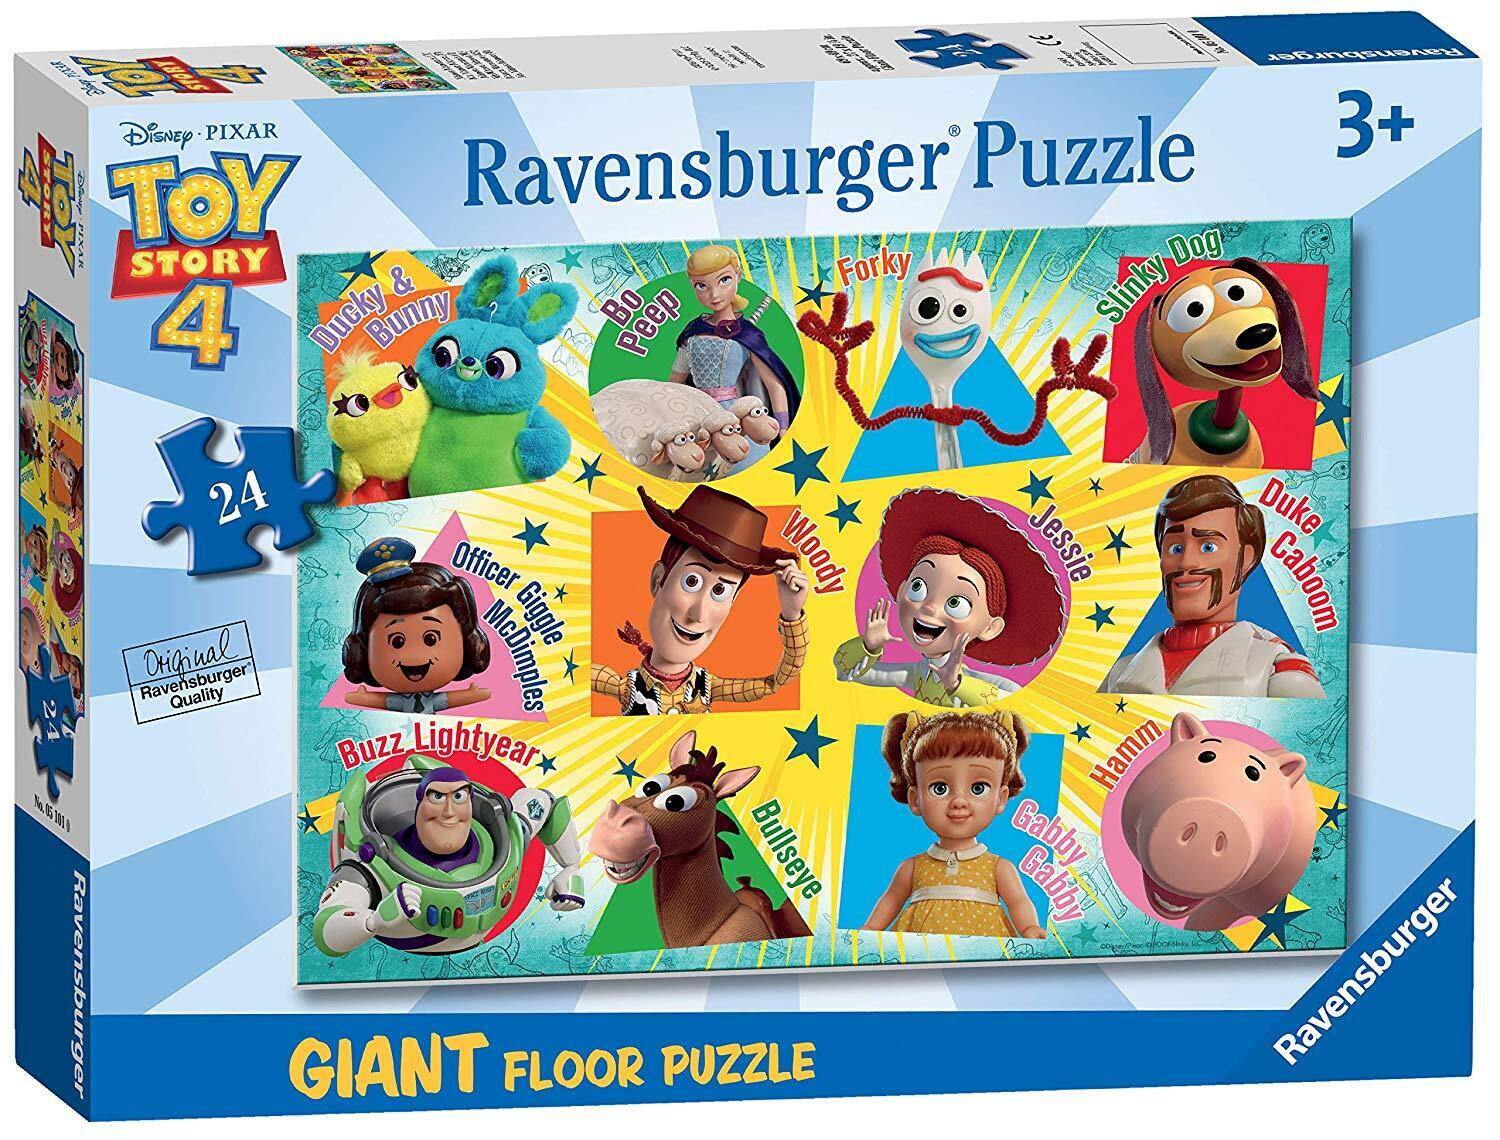 Ravensburger Puzzle Toy Story 4 Giant Puzzle 24 Piece